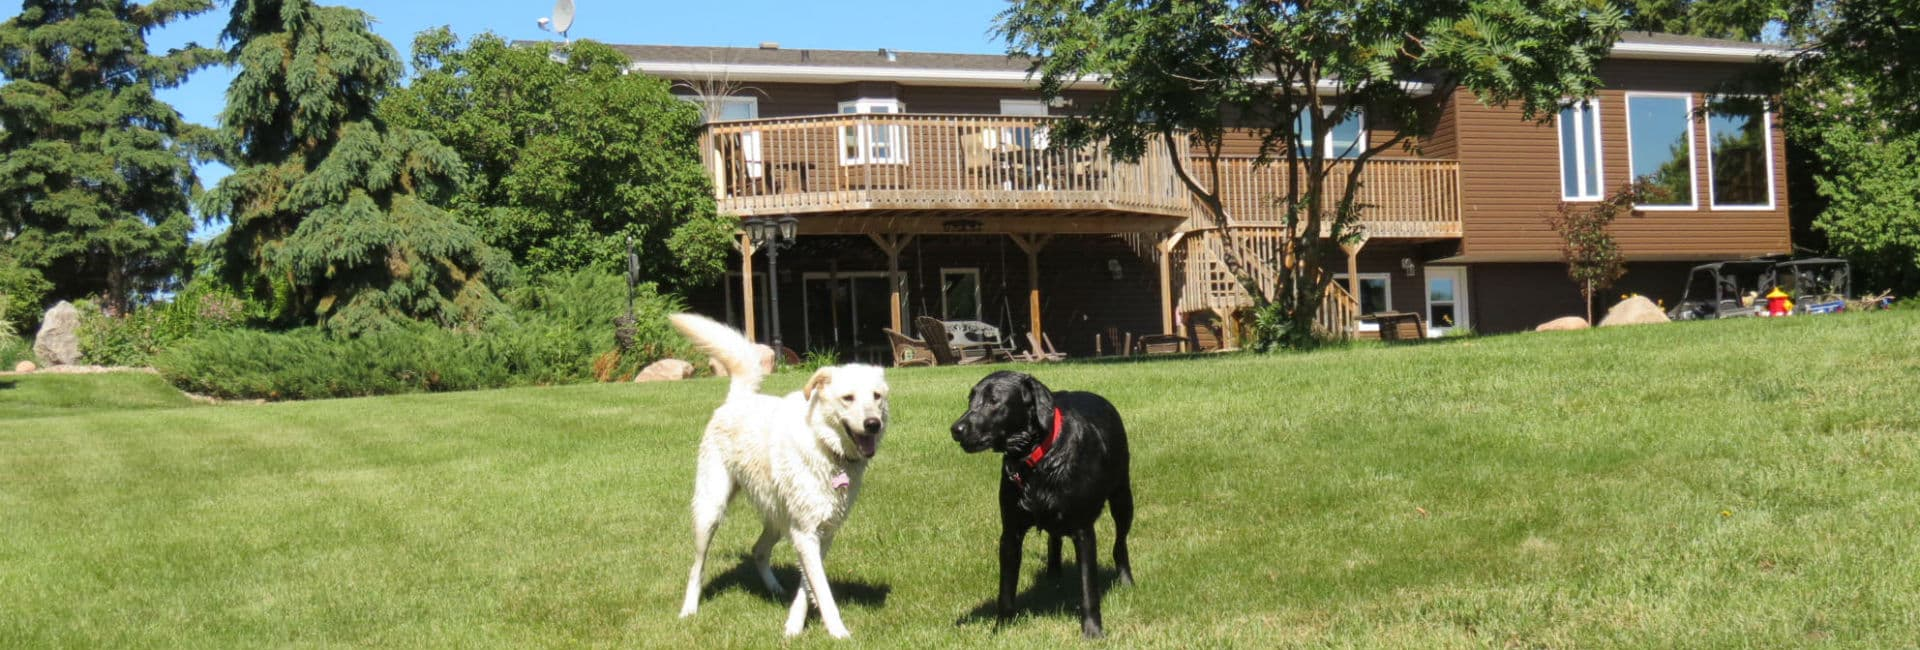 <h2>HECK OF A DOG HOME</h2><p>Where Pets are people too!</p><a title='Read more about our services' href='http://heckofadoghome.com/our-services/'>Read about our services</a>